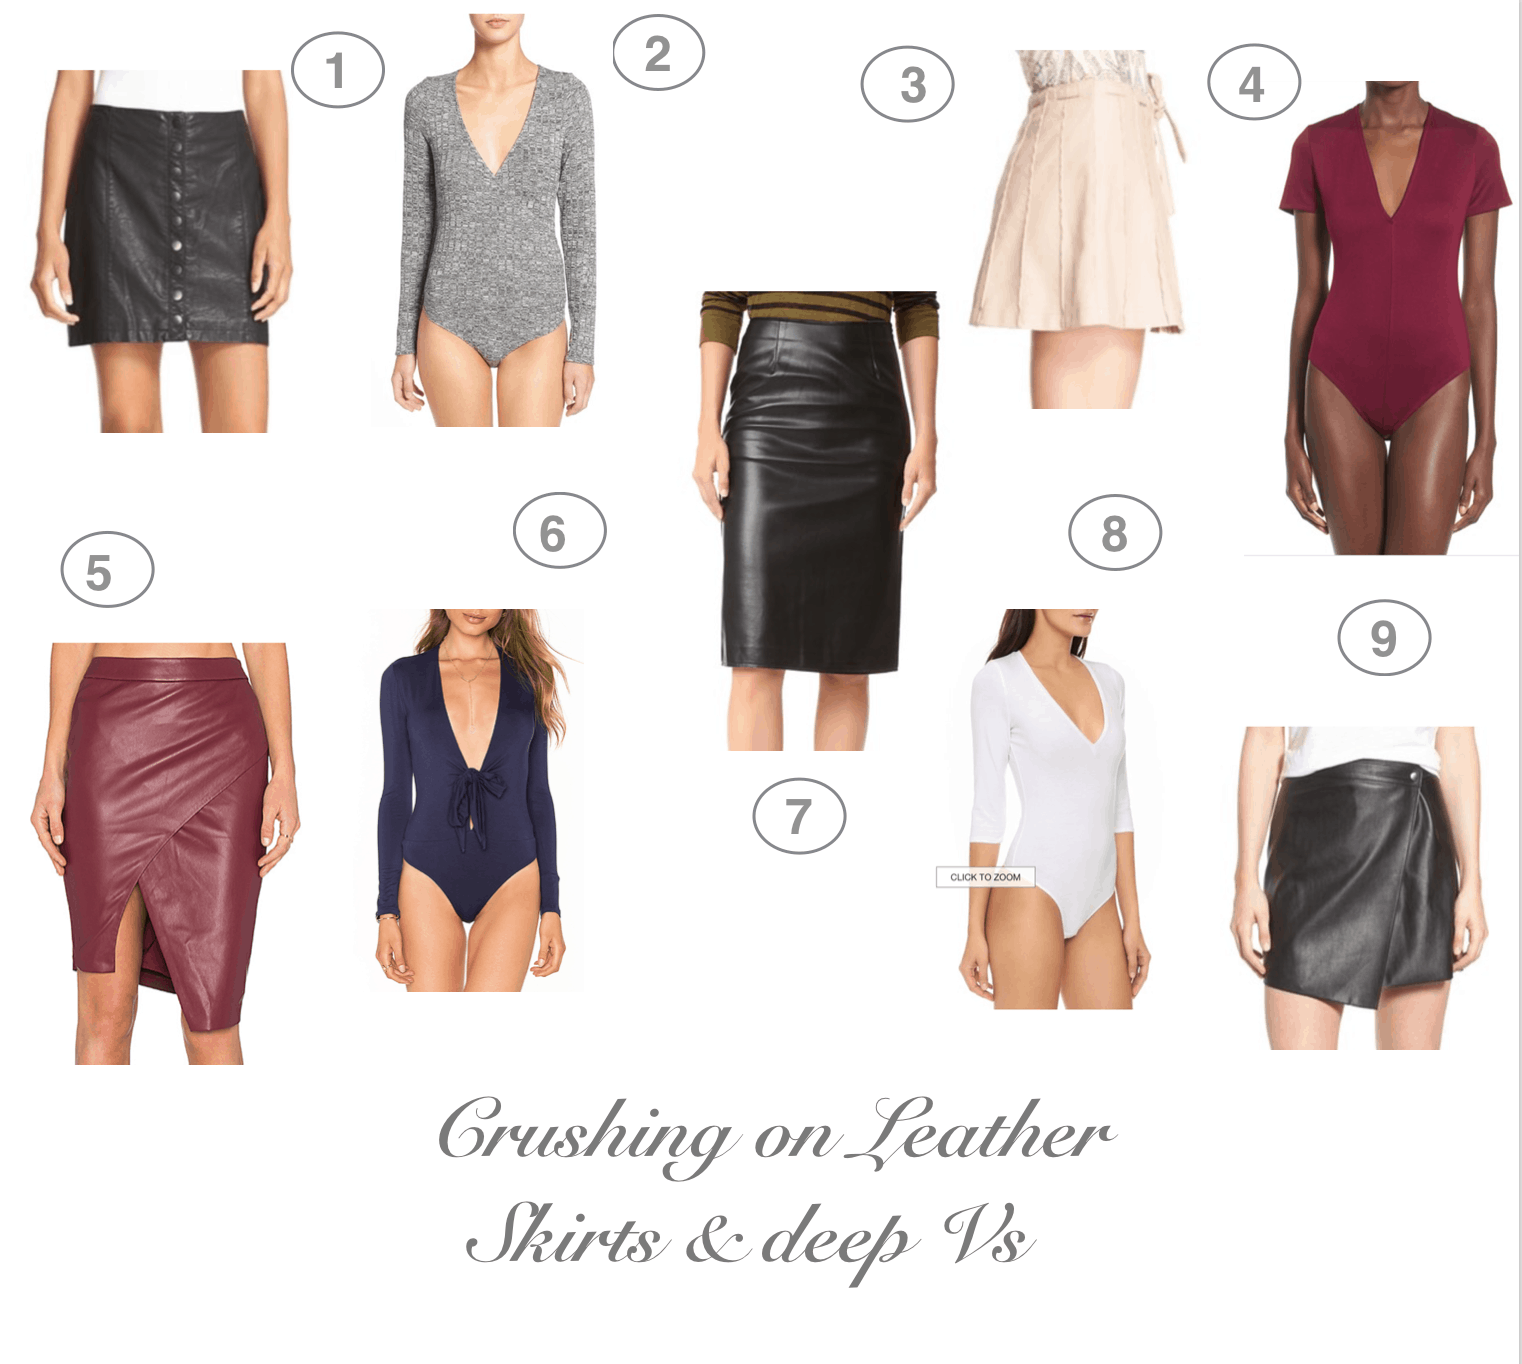 Dress Up Buttercup   Houston Fashion and Travel Blog - Dede Raad   Crushing on Leather Skirts & Deep V's